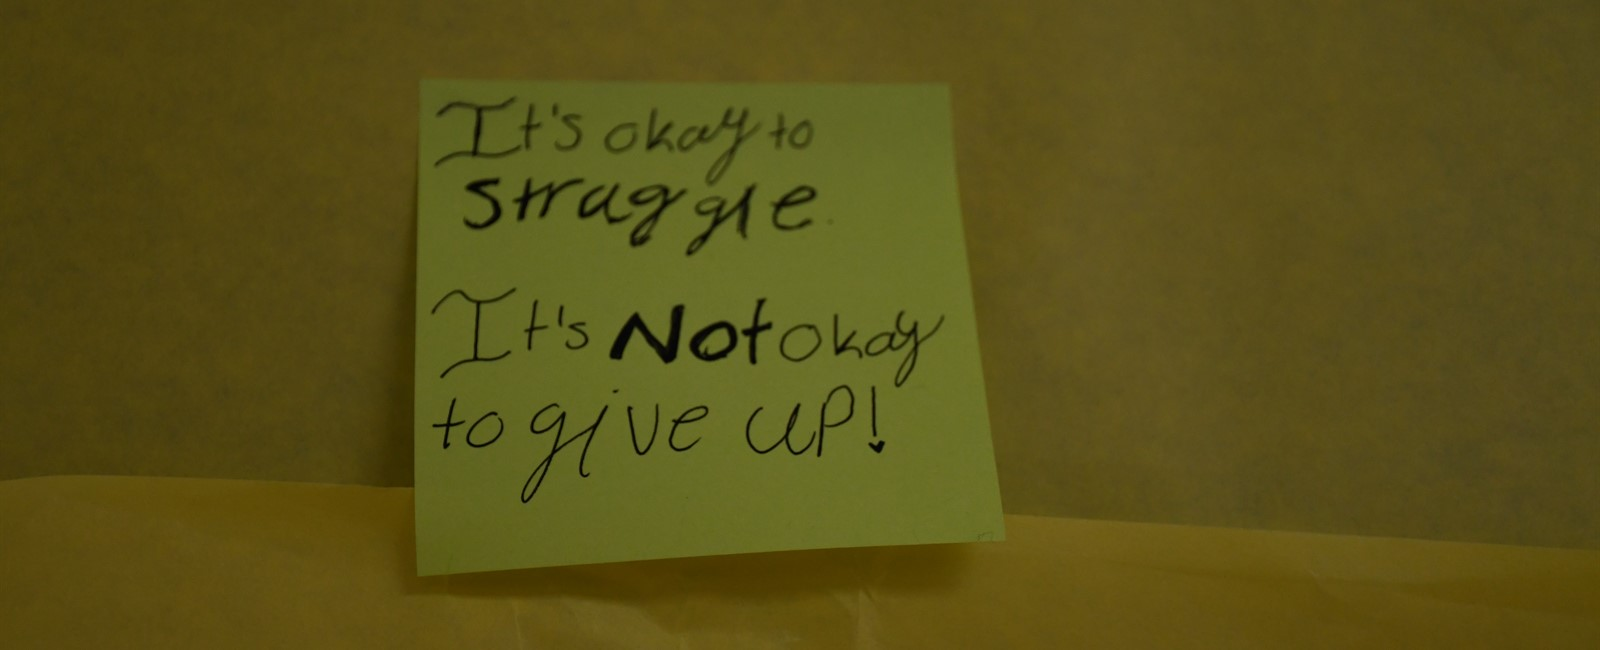 It's okay to struggle. It's NOT okay to give up!